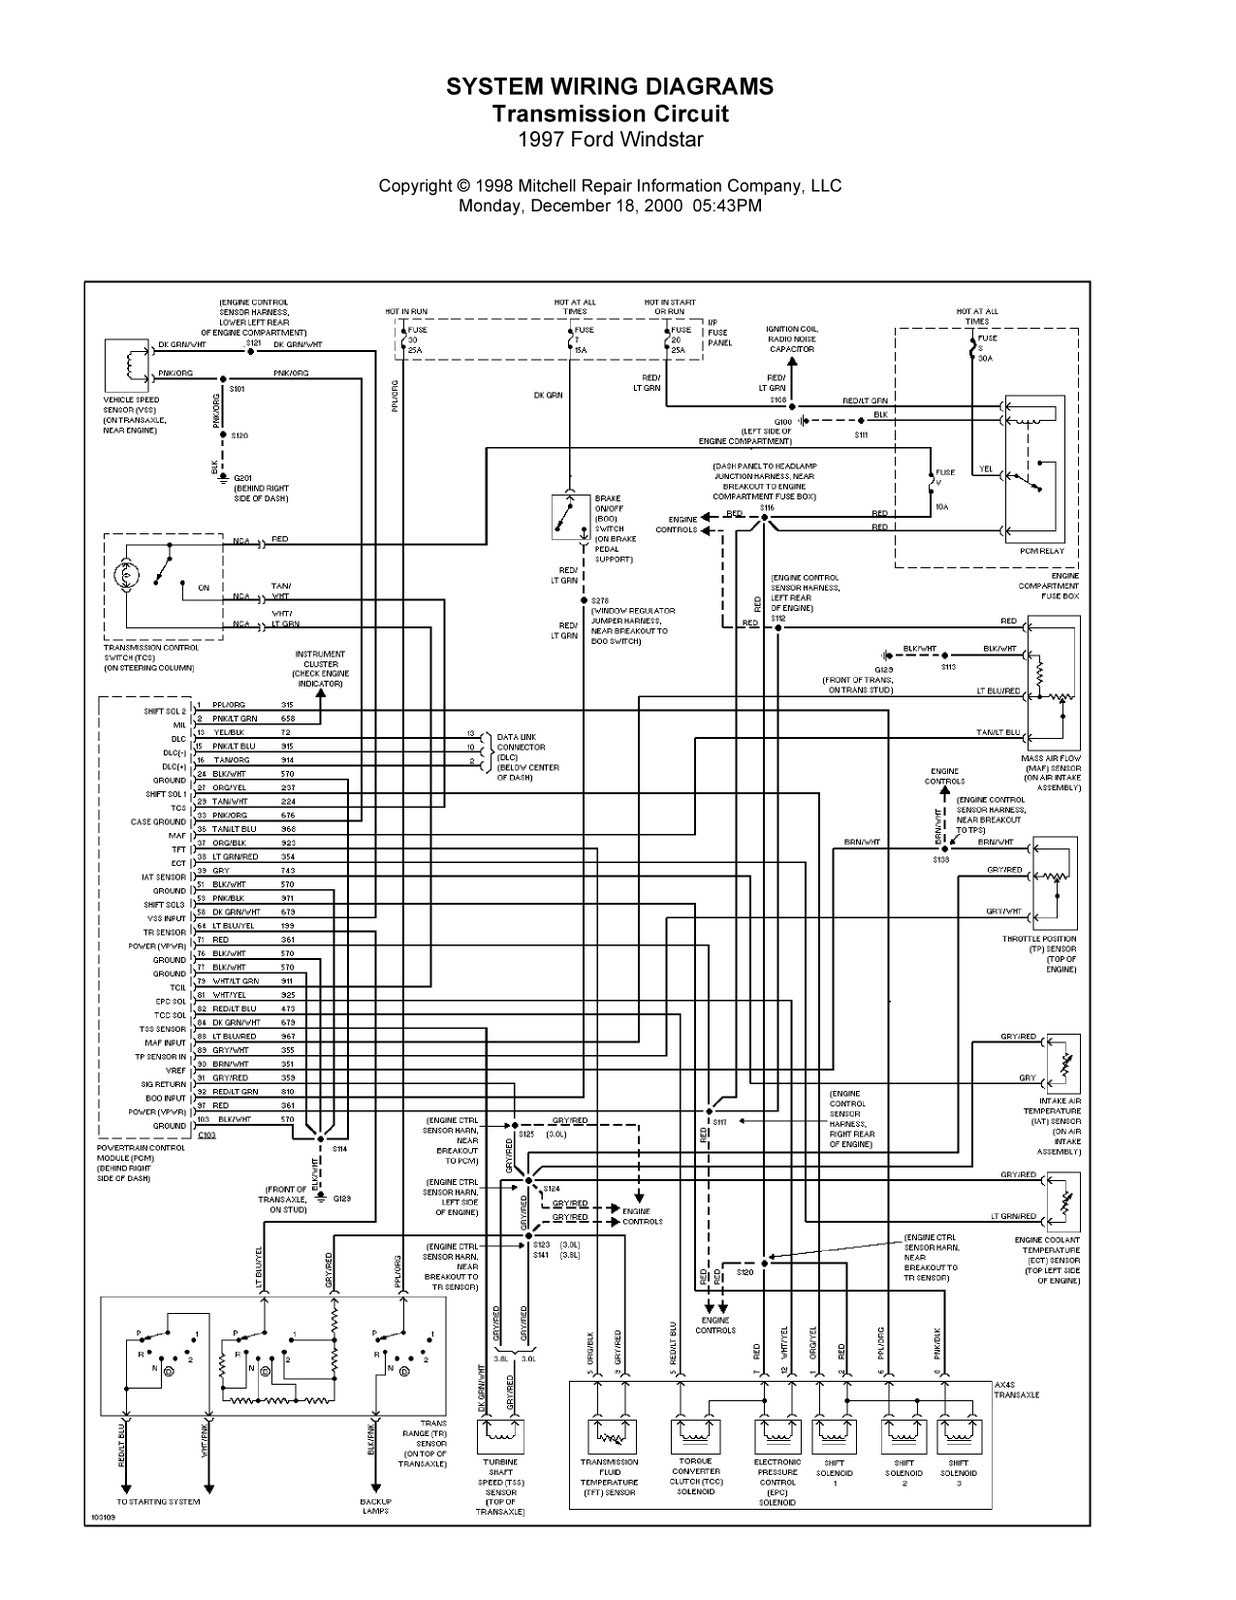 Vw Jettum Fuse Diagram